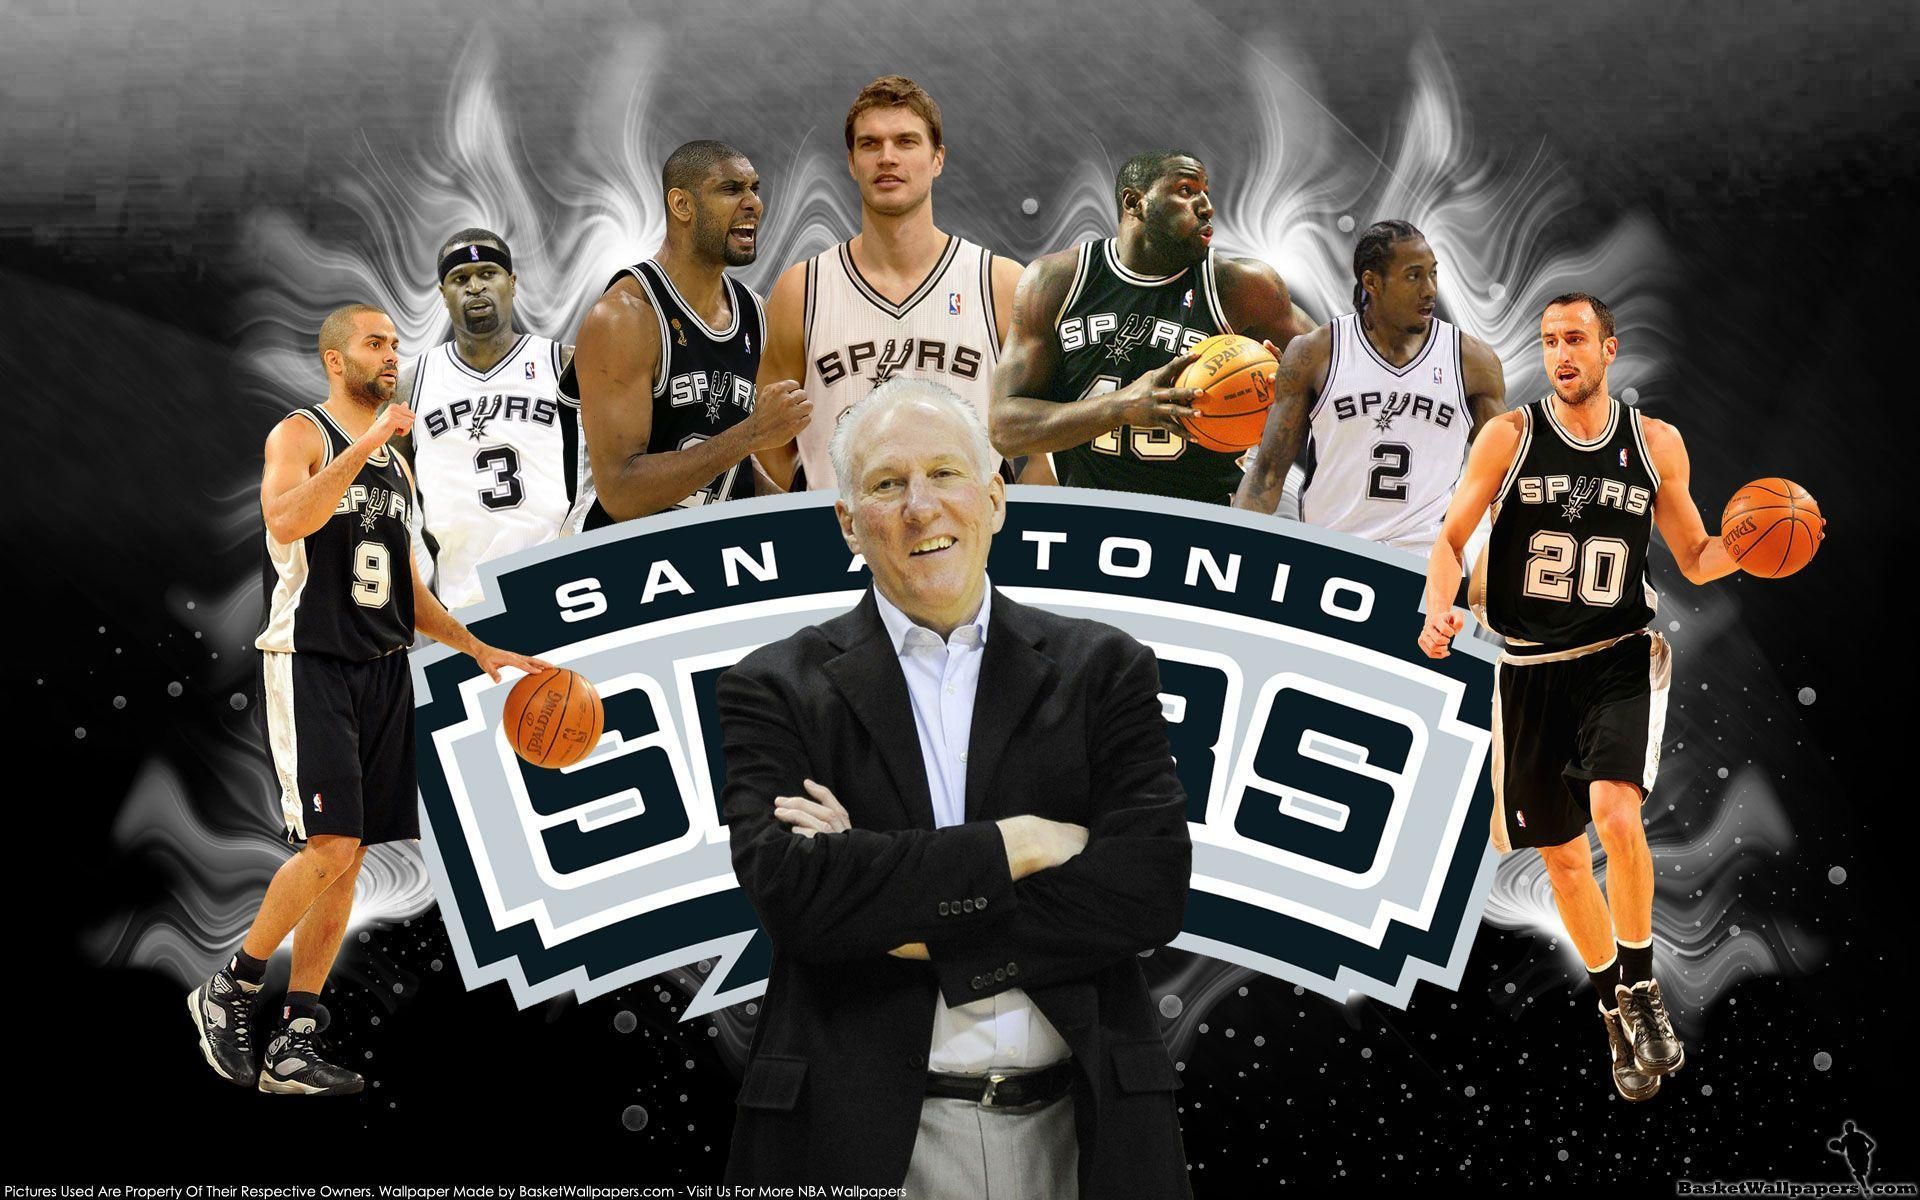 San Antonio Spurs Wallpapers High Resolution and Quality Download